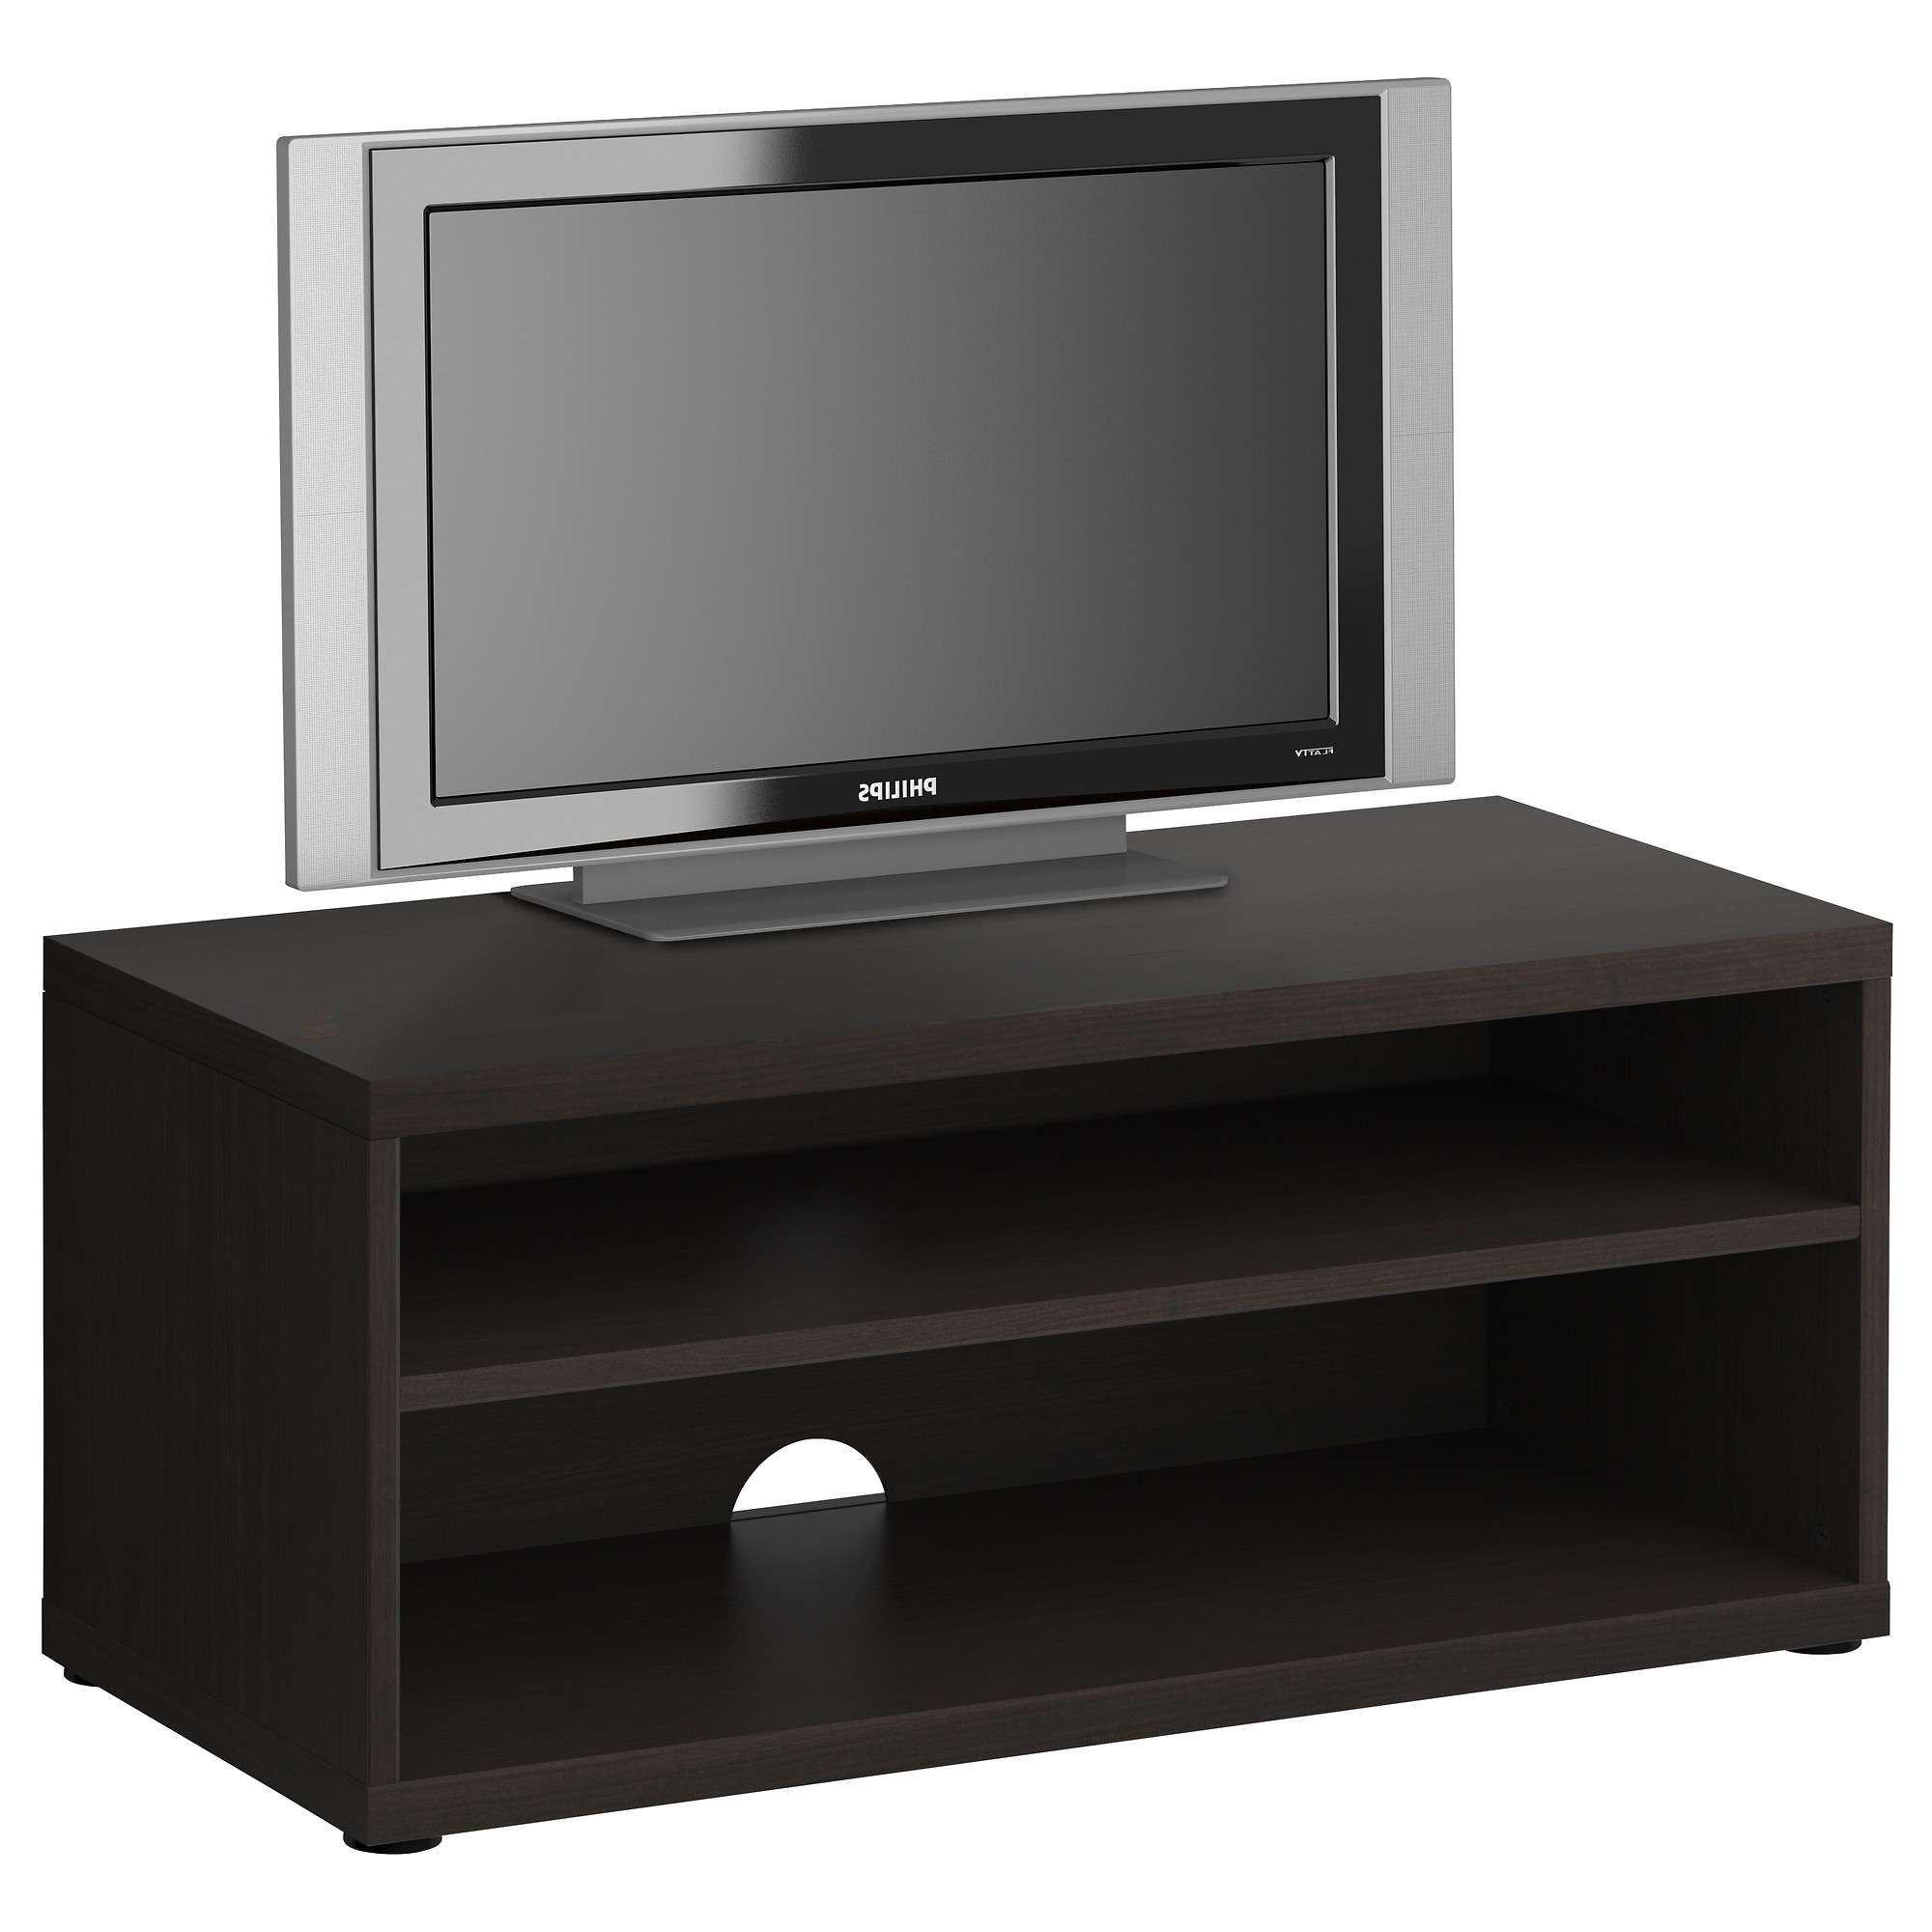 Peculiar Mosjo Tv Unit Blackbrown For Small Tv Stands Ikea Toger With Regard To Small Black Tv Cabinets (View 3 of 20)